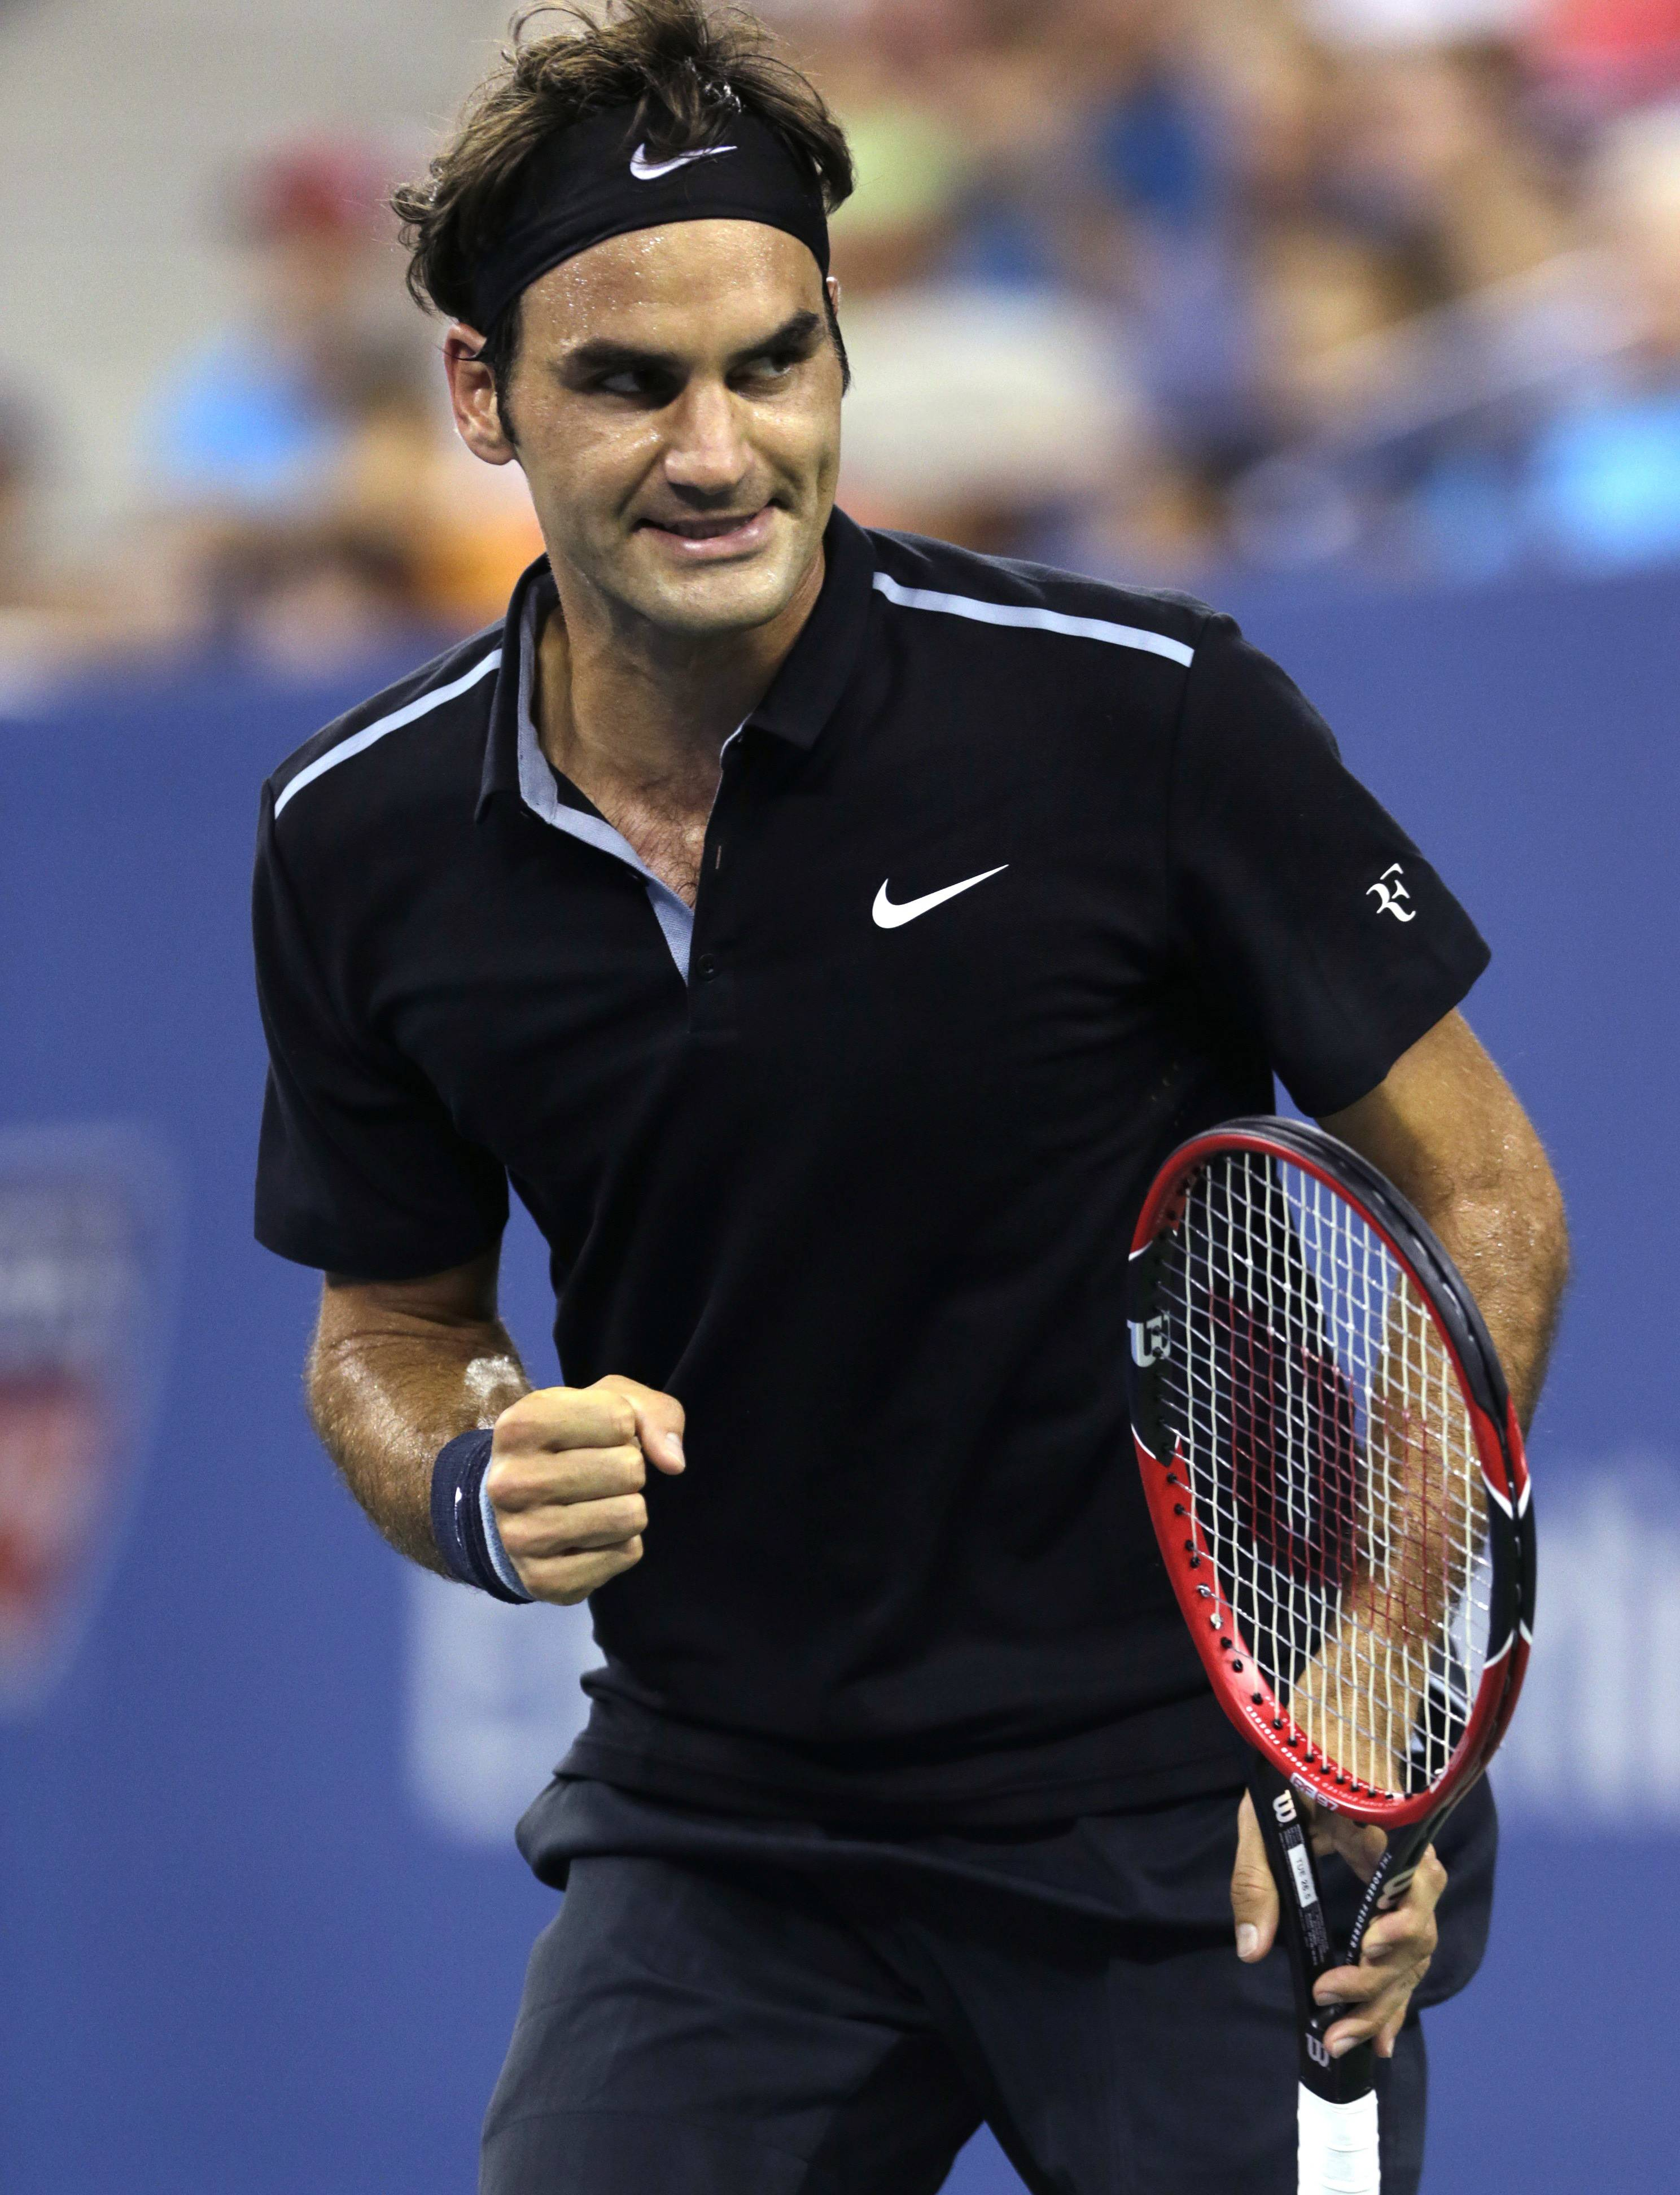 Roger Federer, of Switzerland, pumps his fist after winning the second set against Roberto Bautista Agut, of Spain, during the fourth round of the 2014 U.S. Open tennis tournament, Tuesday, Sept. 2, 2014, in New York.